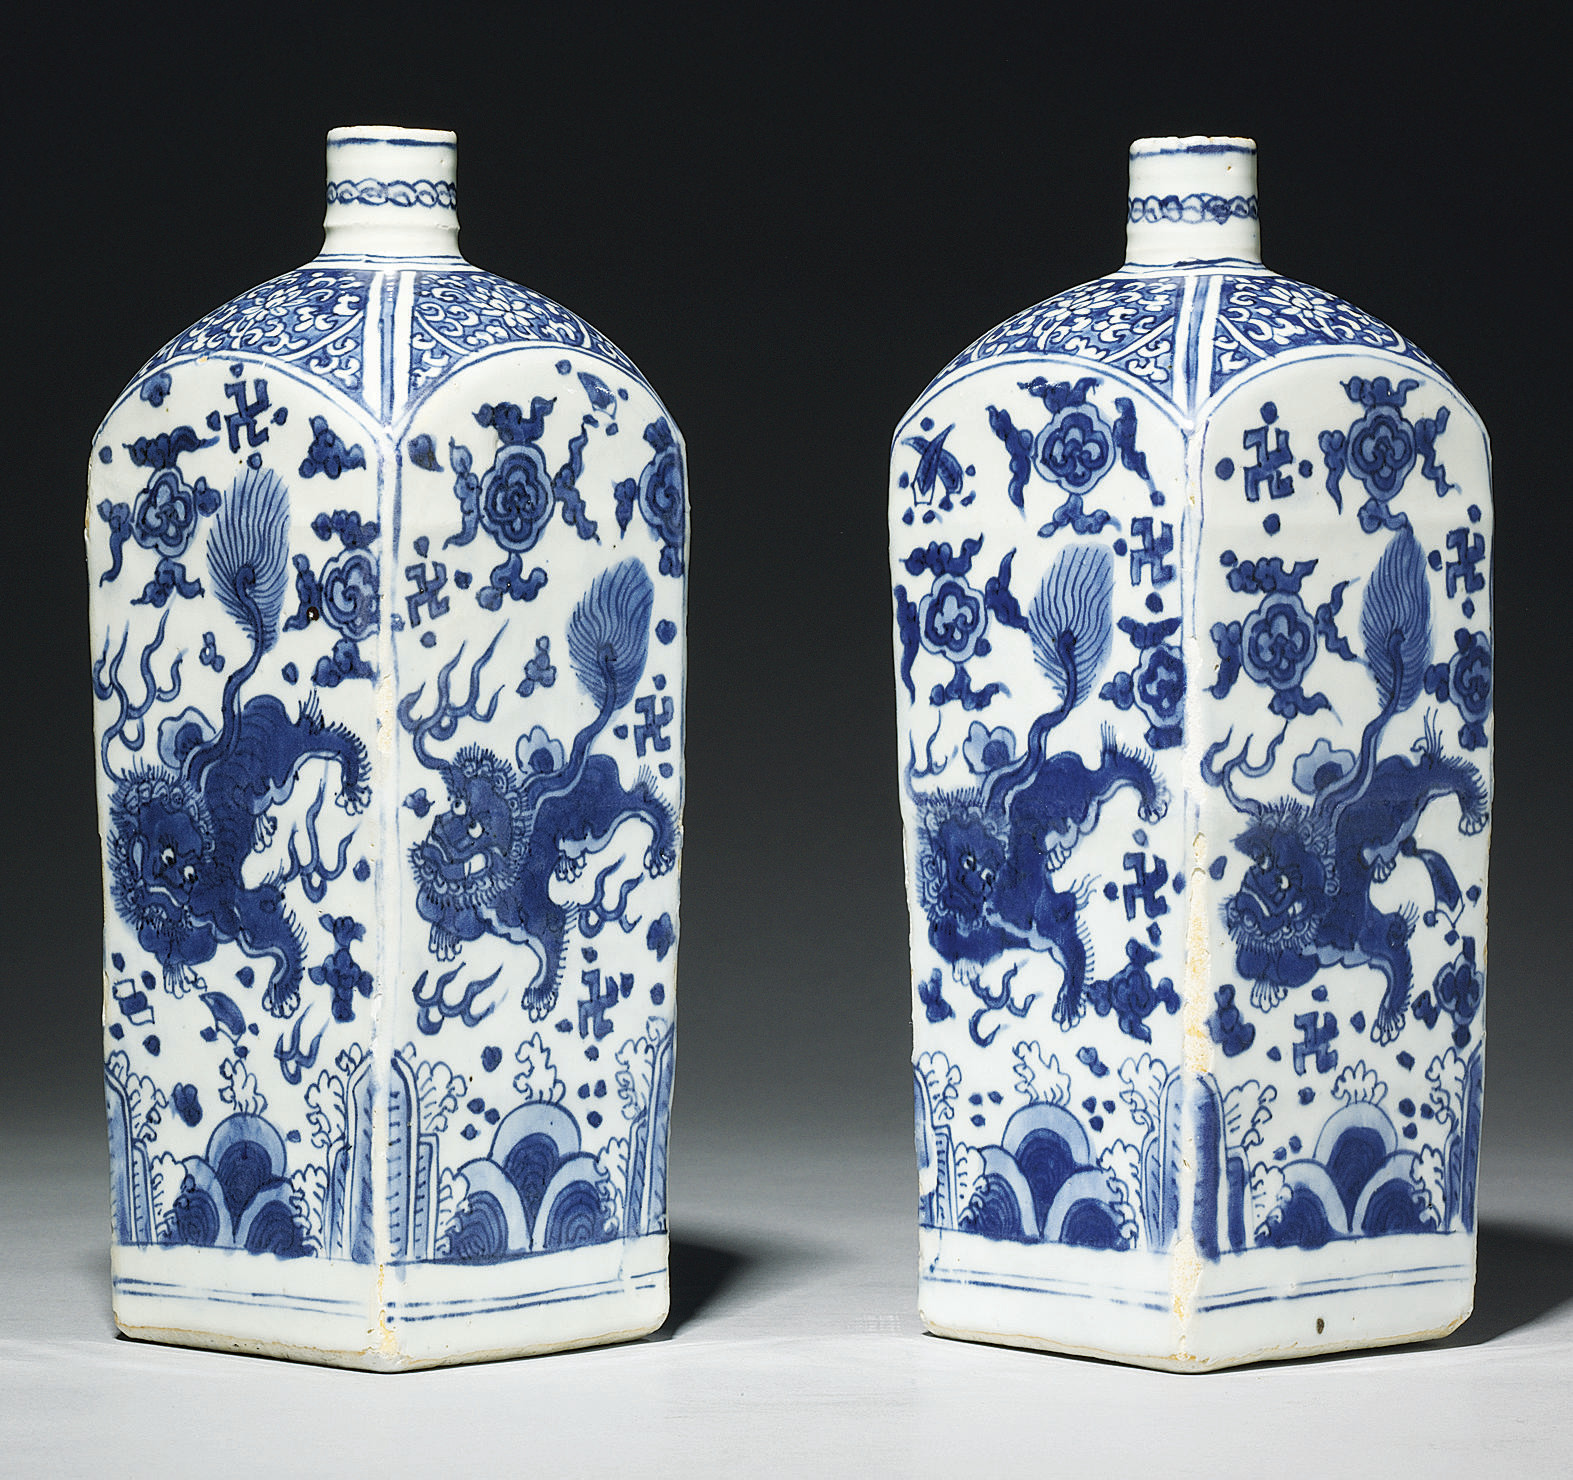 A PAIR OF UNUSUAL LATE MING BL